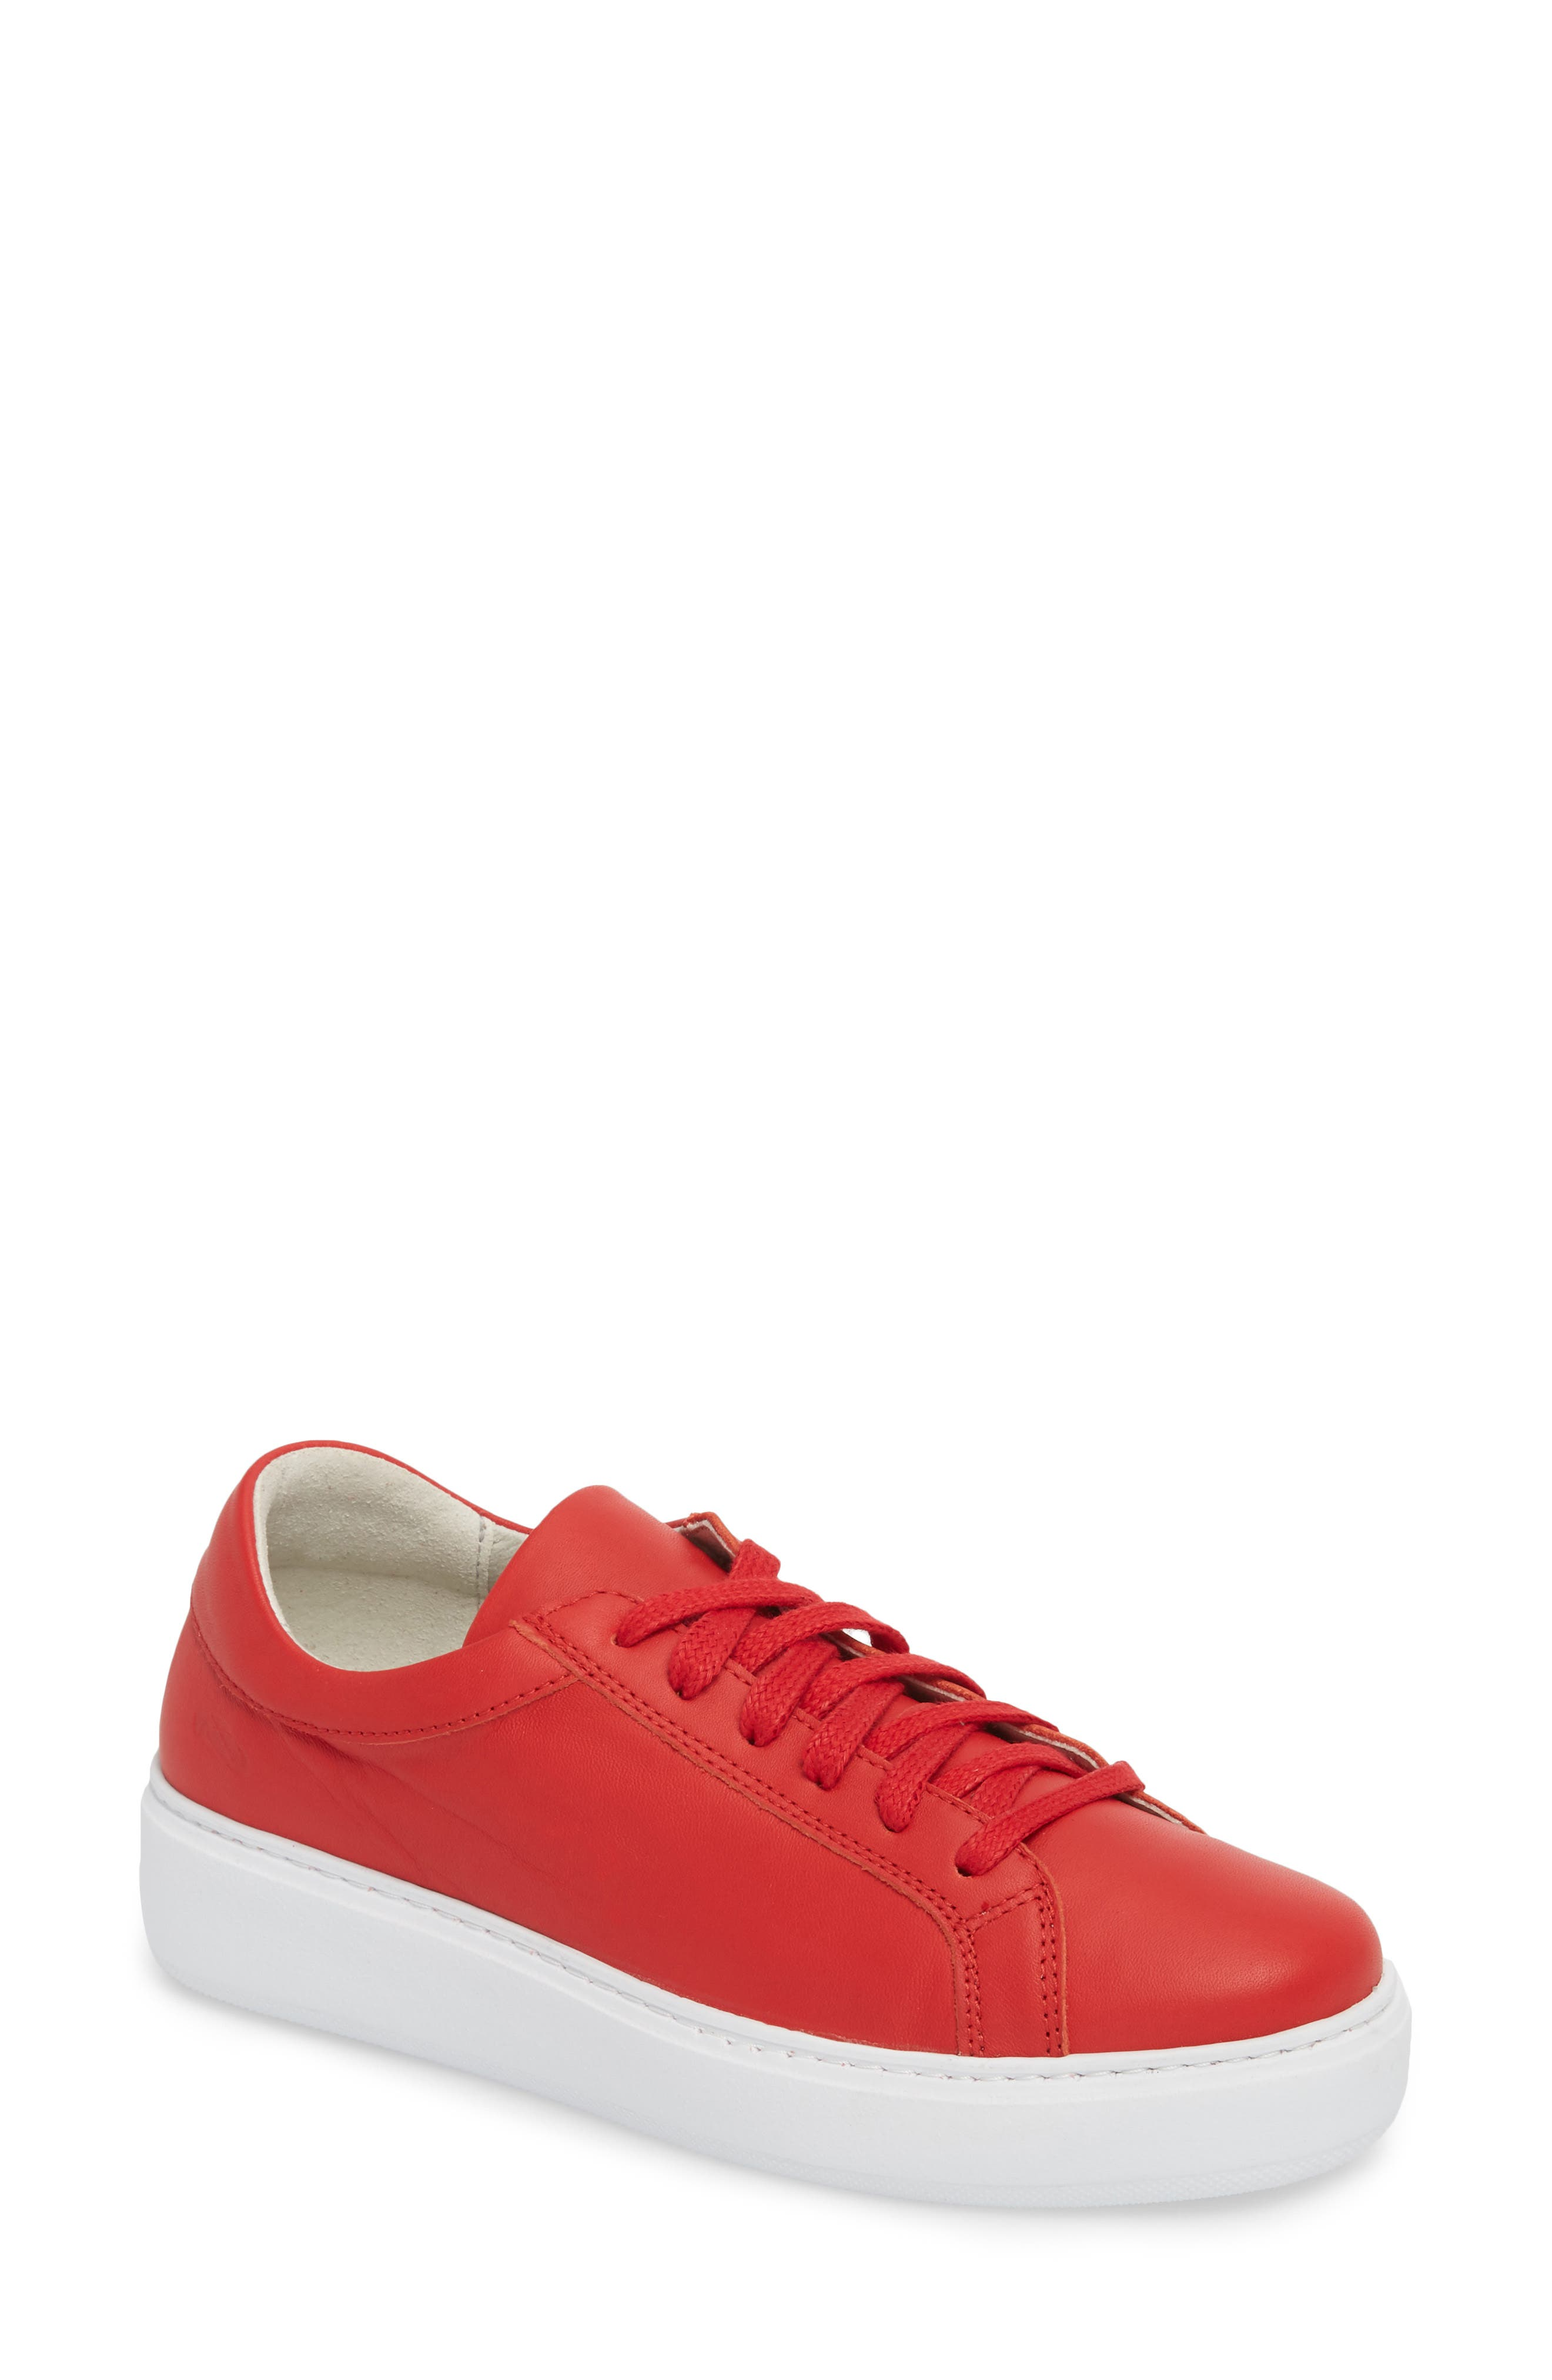 Tully Sneaker,                         Main,                         color, Red Leather